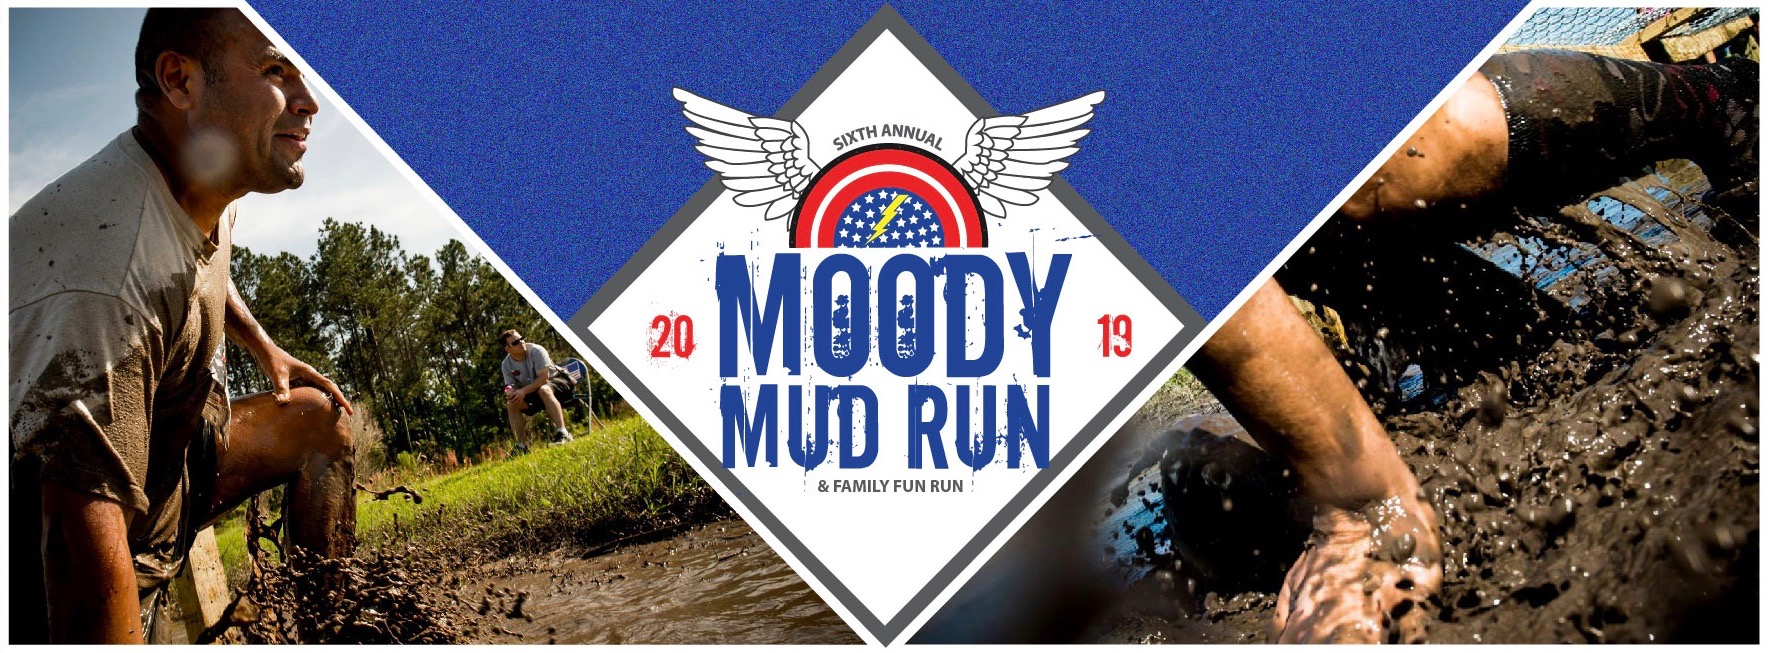 Moody Mud Run Banner 2